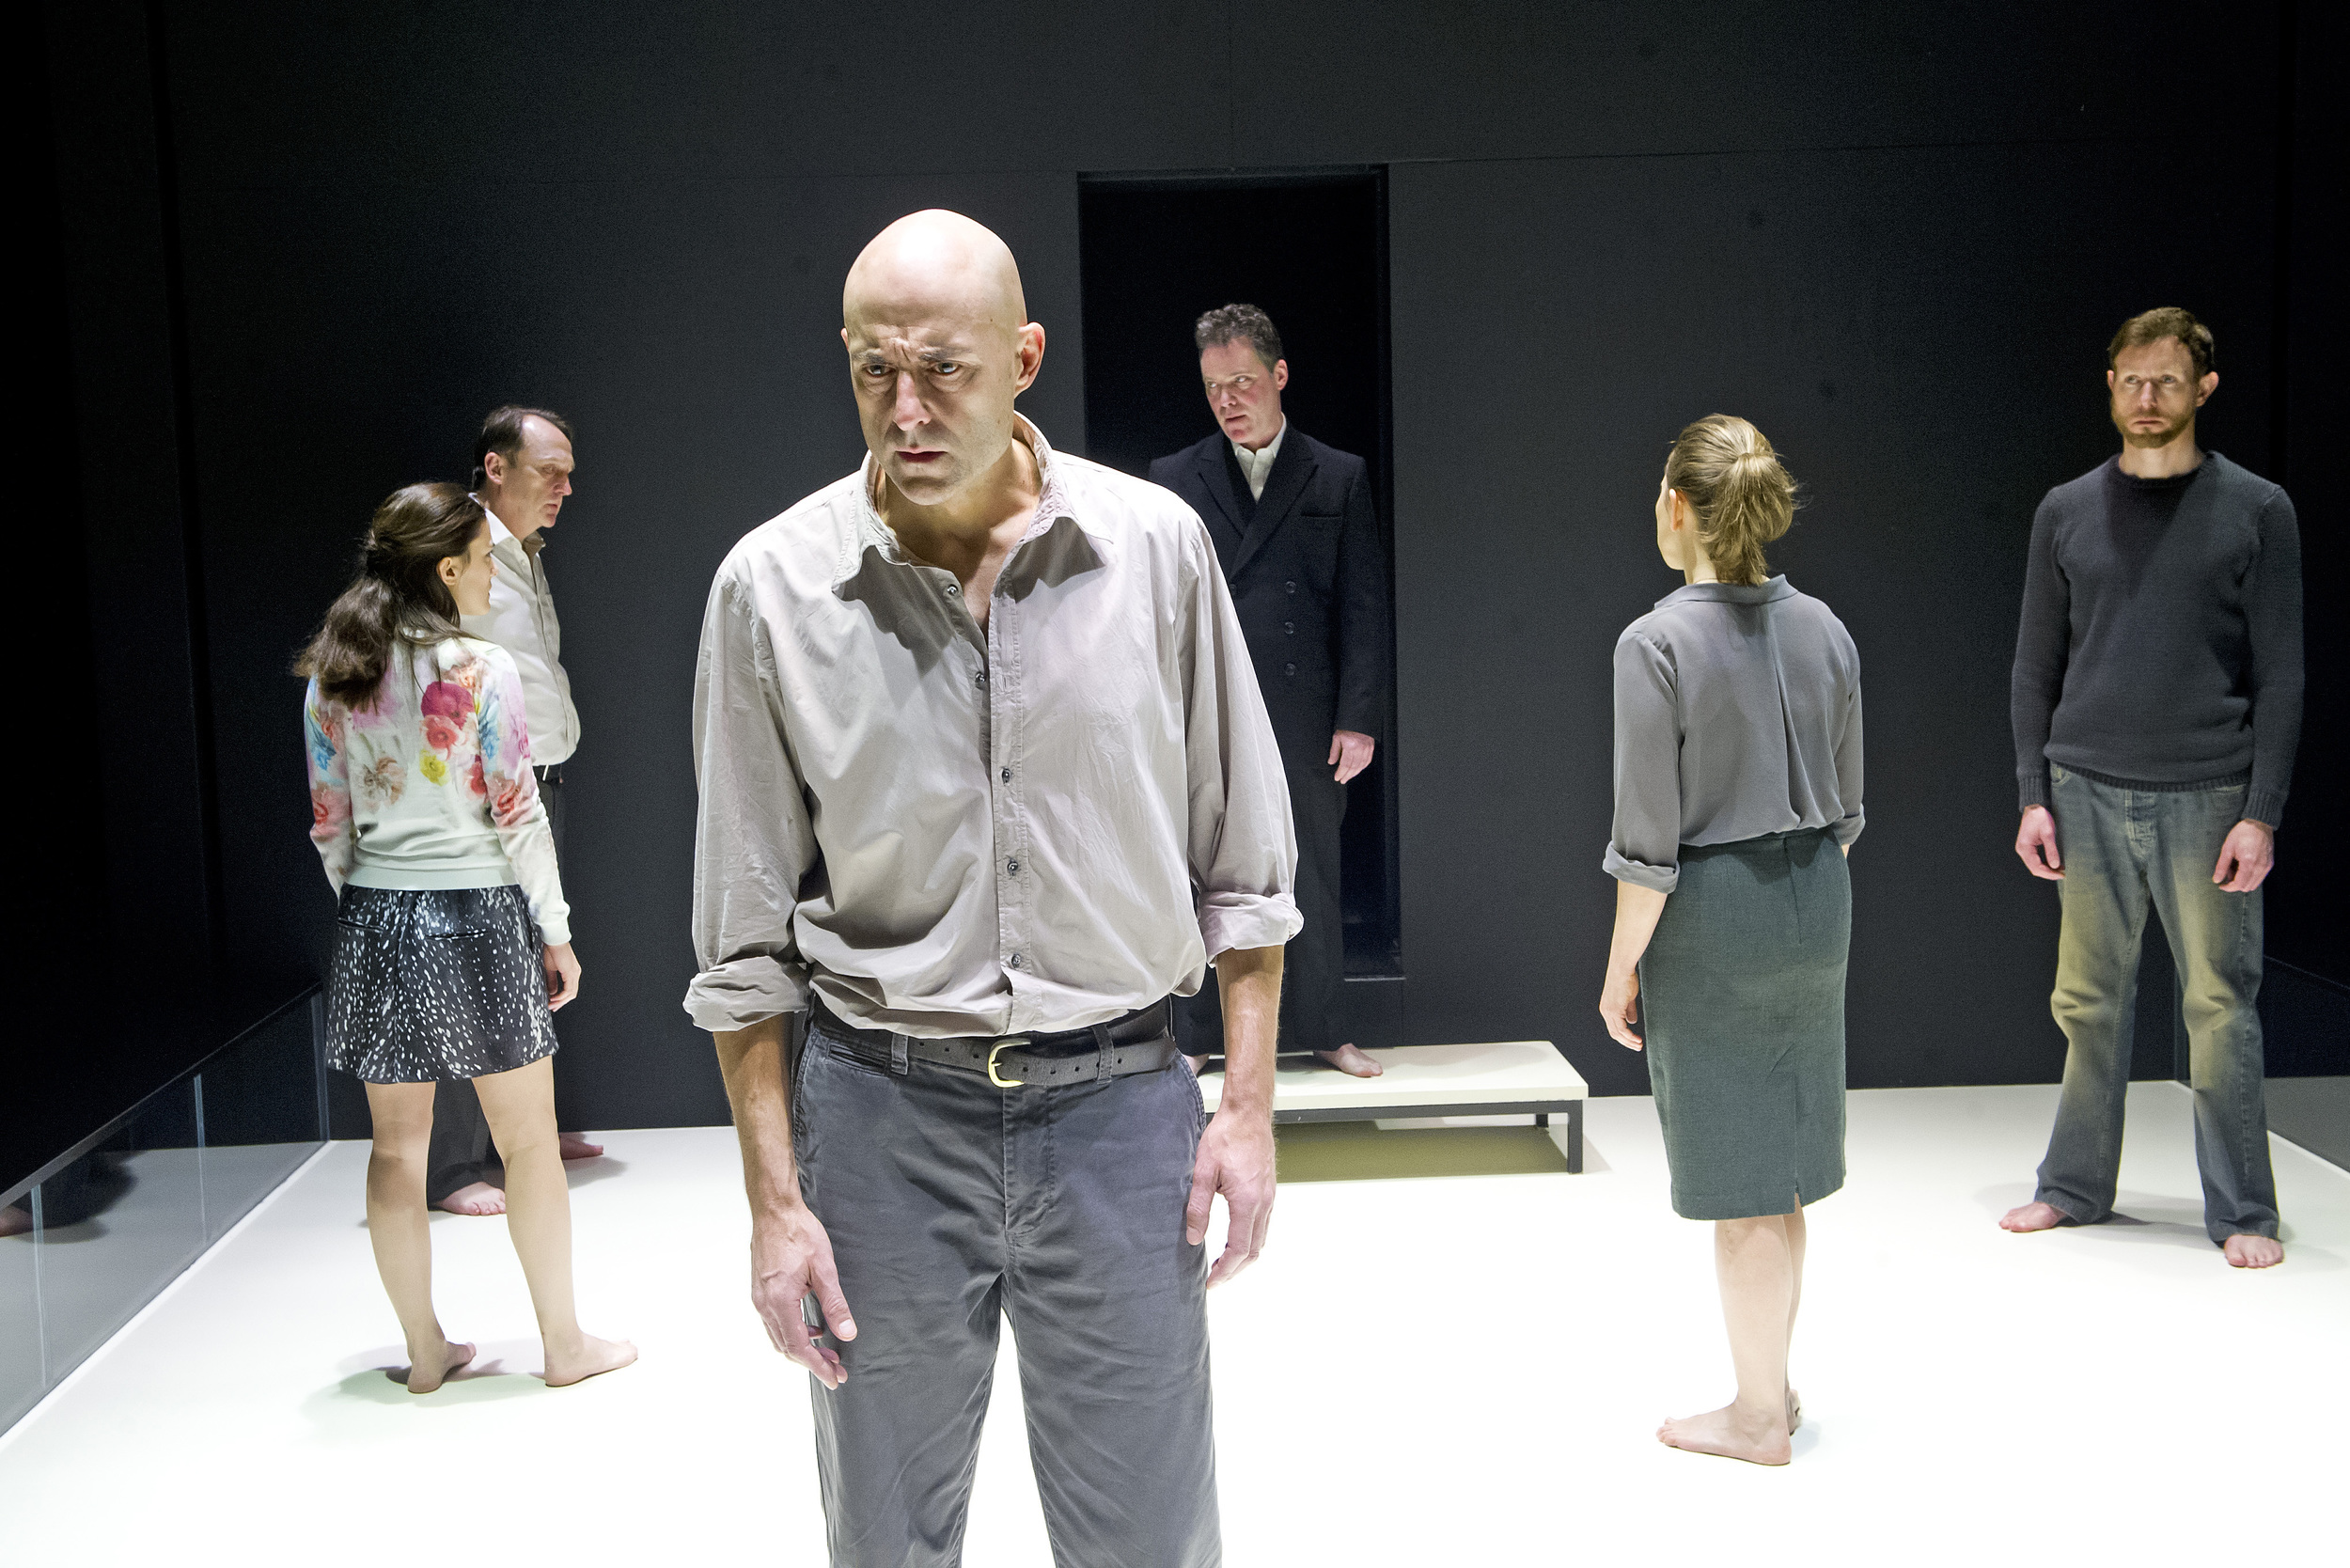 Mark Strong in The View from the Bridge. Photo: Tristram Kenton/The Guardian.